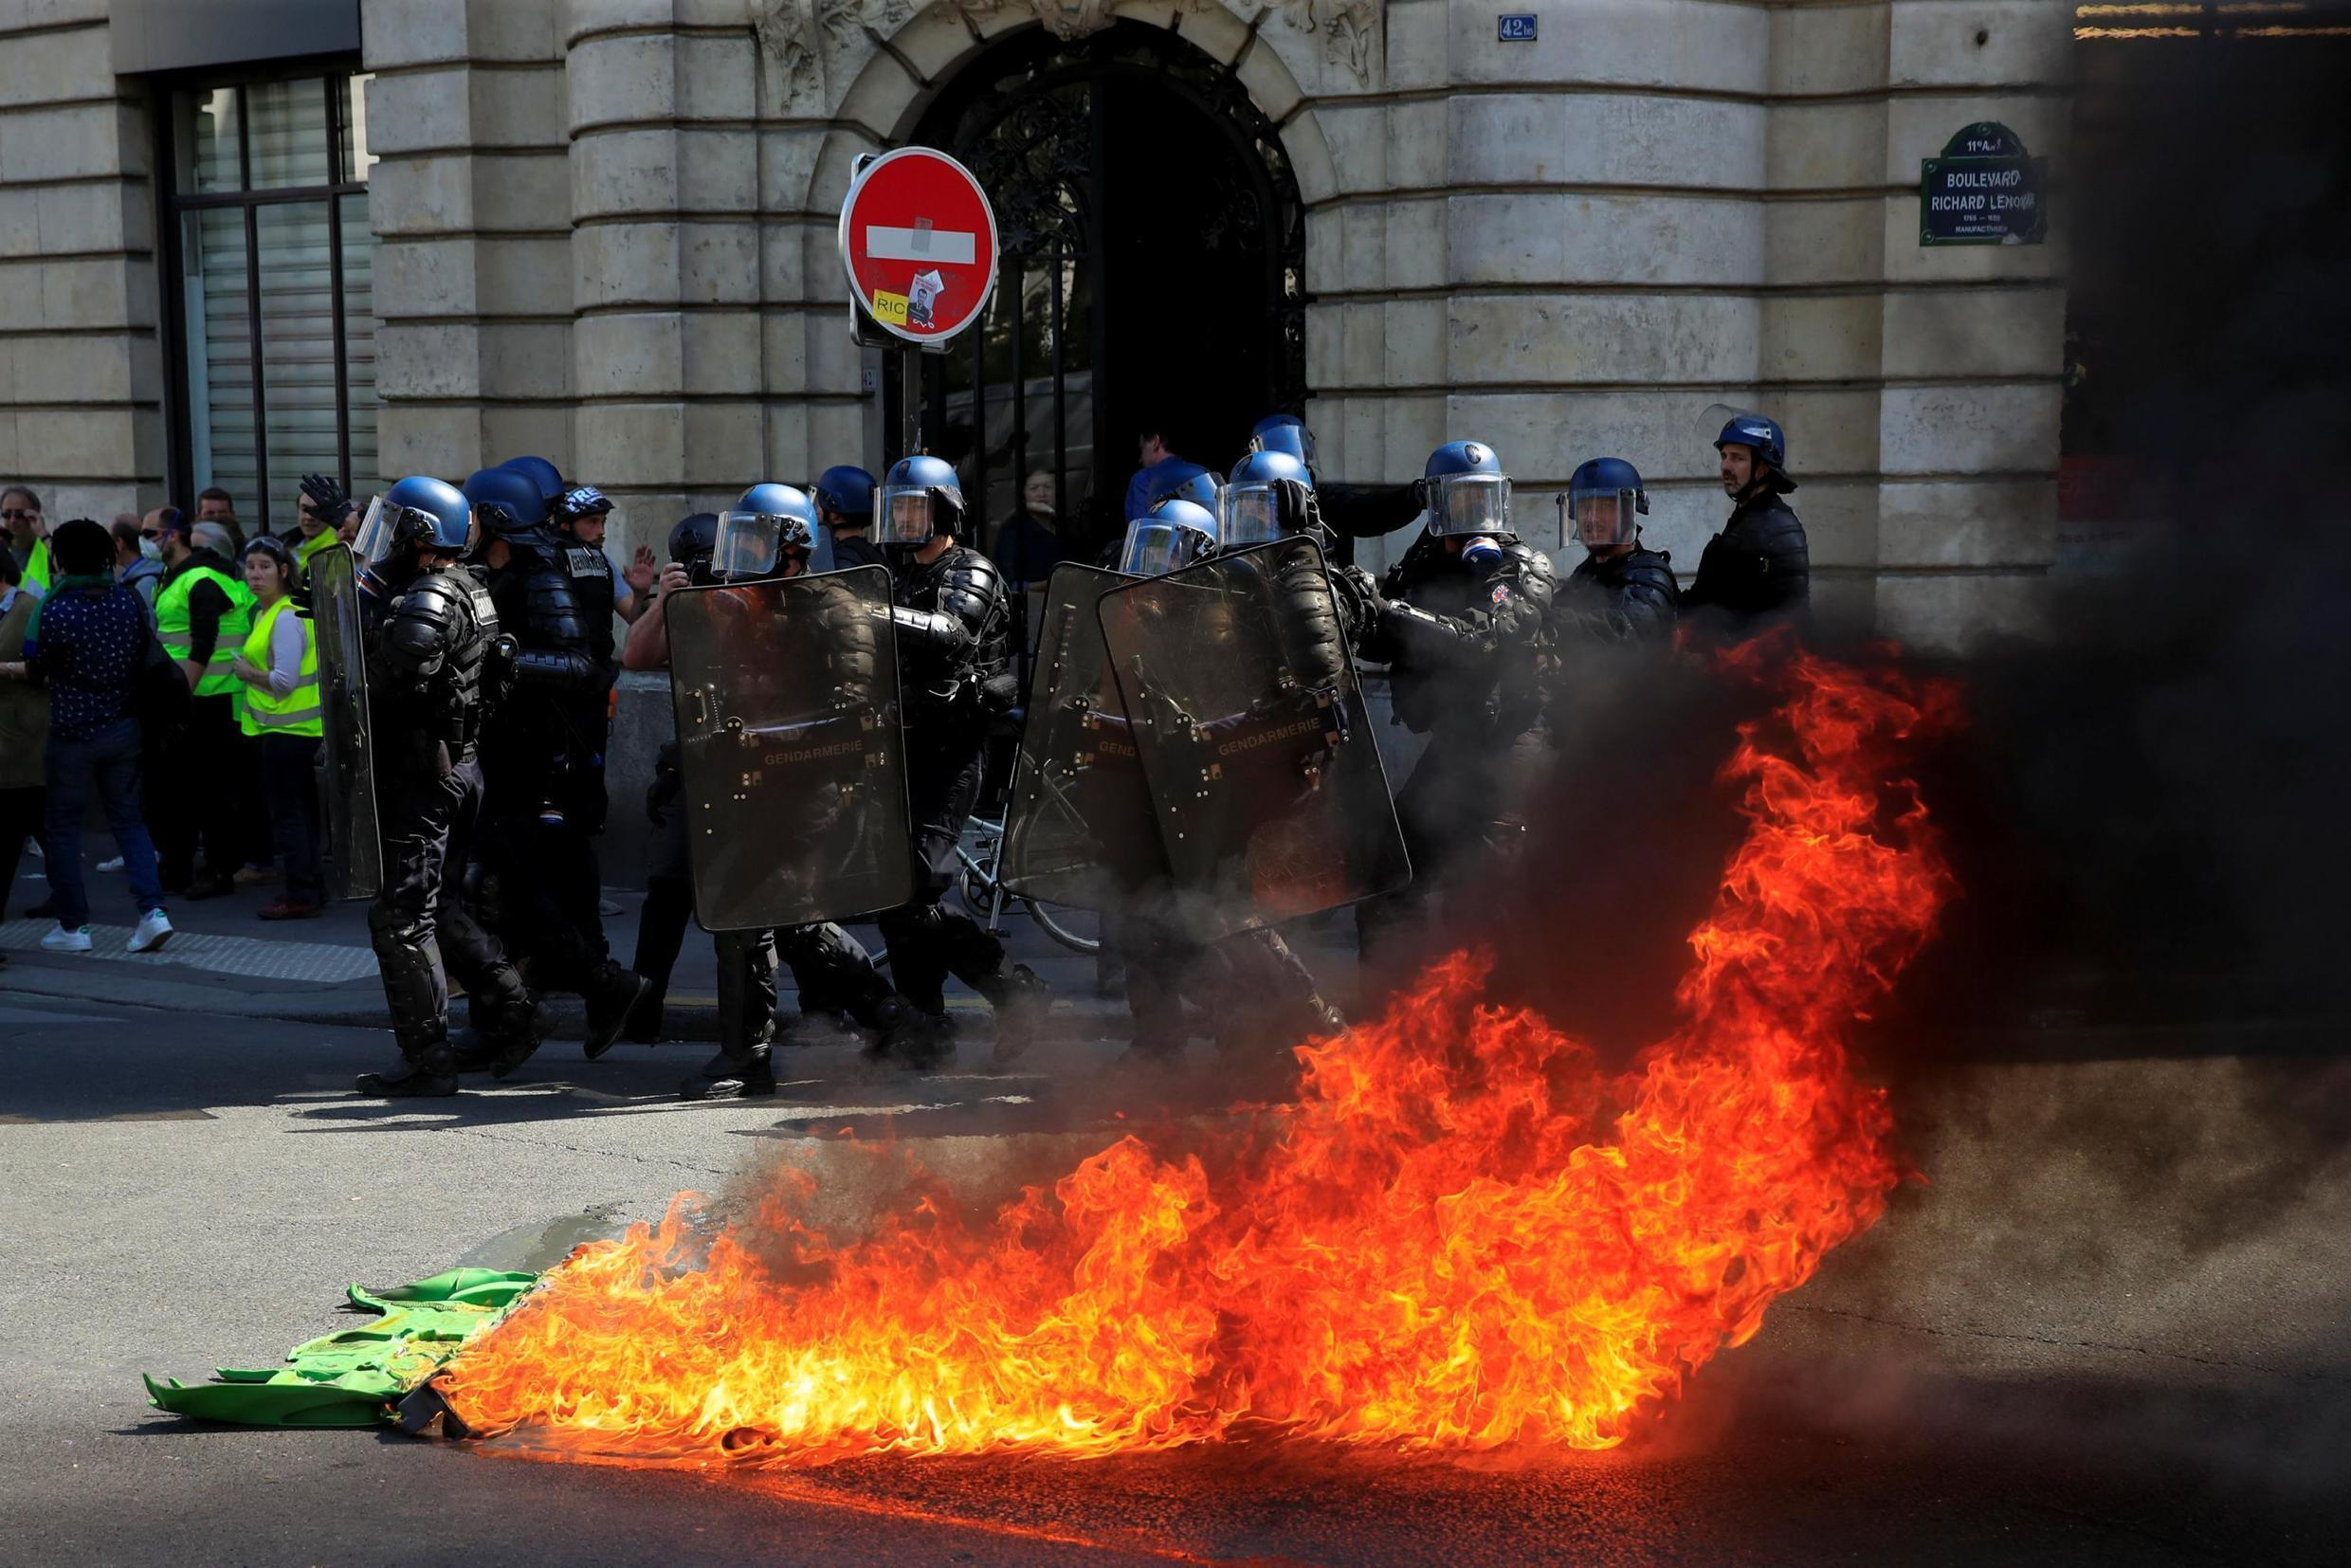 Police officers pass a fire at a demonstration during Act XXIII (the 23rd consecutive national protest on Saturday) of the yellow vests movement in Paris, France, April 20, 2019.